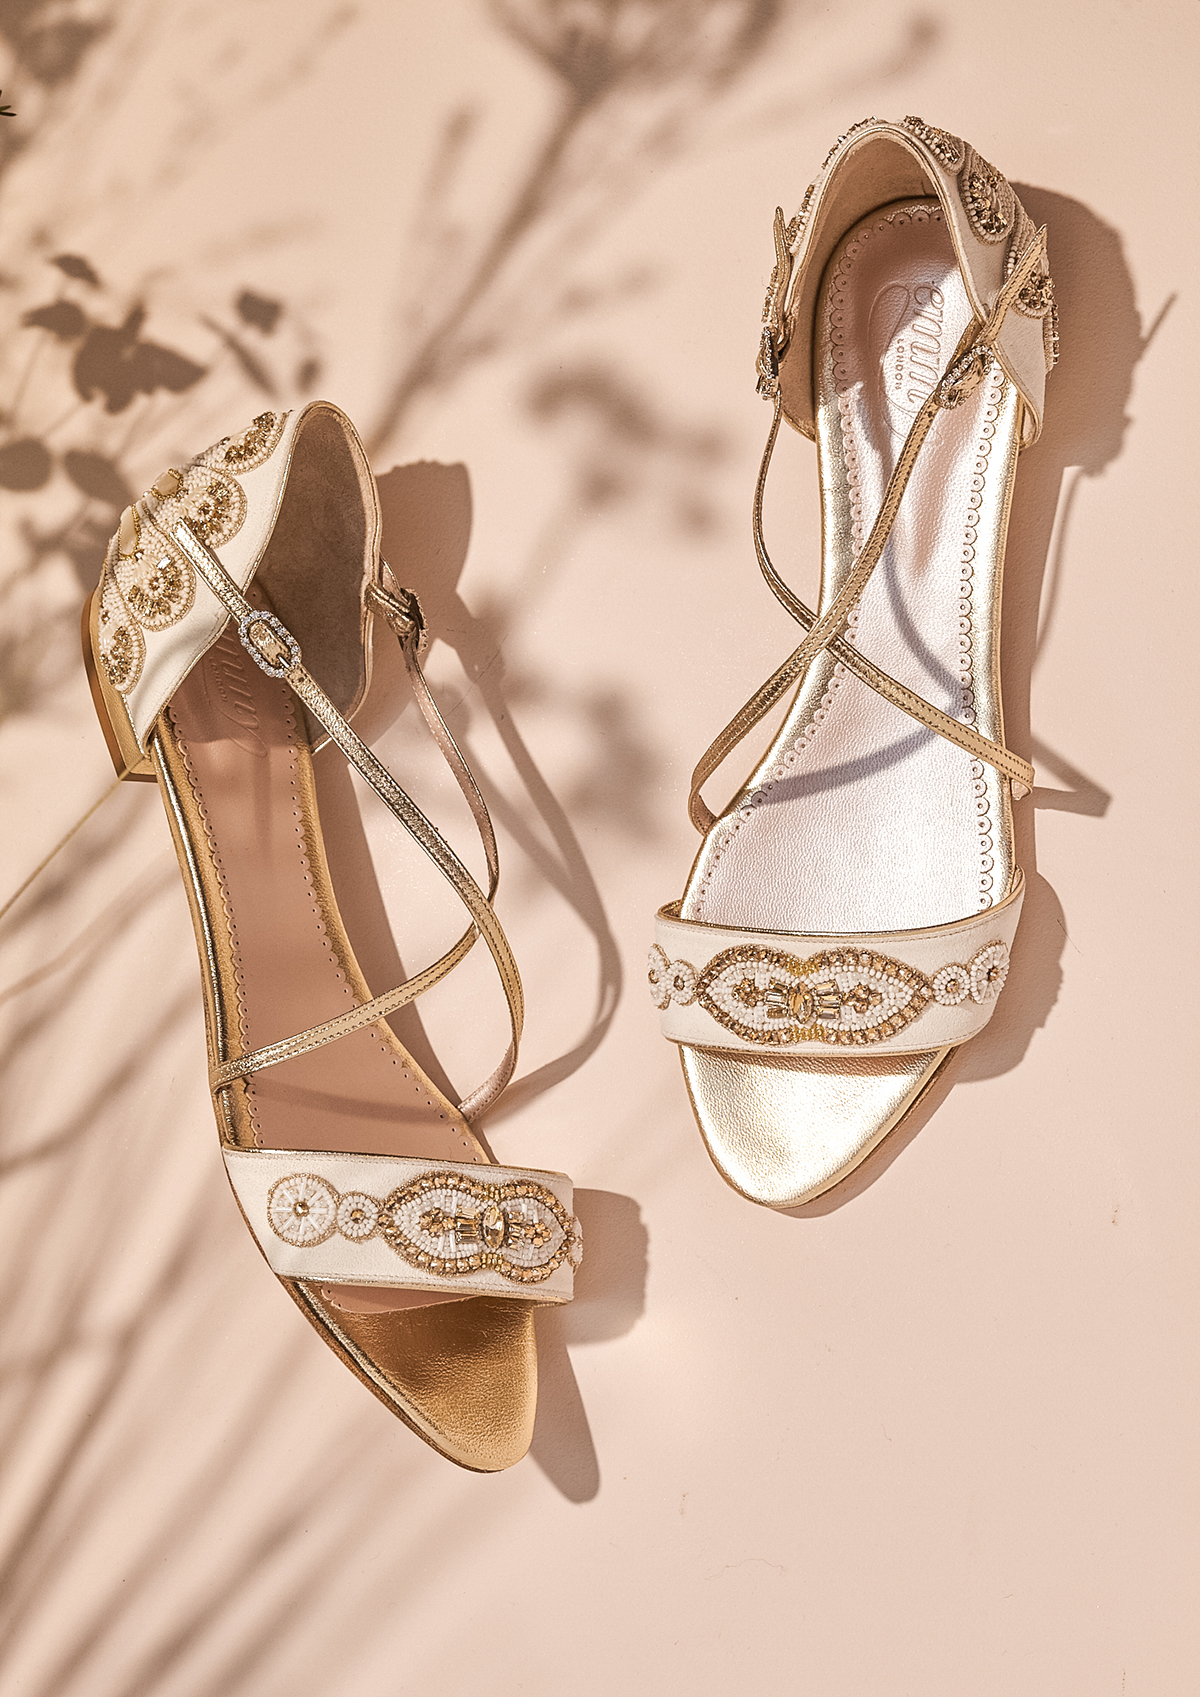 7479c9b8a48 bloved-wedding-blog-bridal-shoes-emmy-london-meadow-dreaming-new-collection -1.jpg